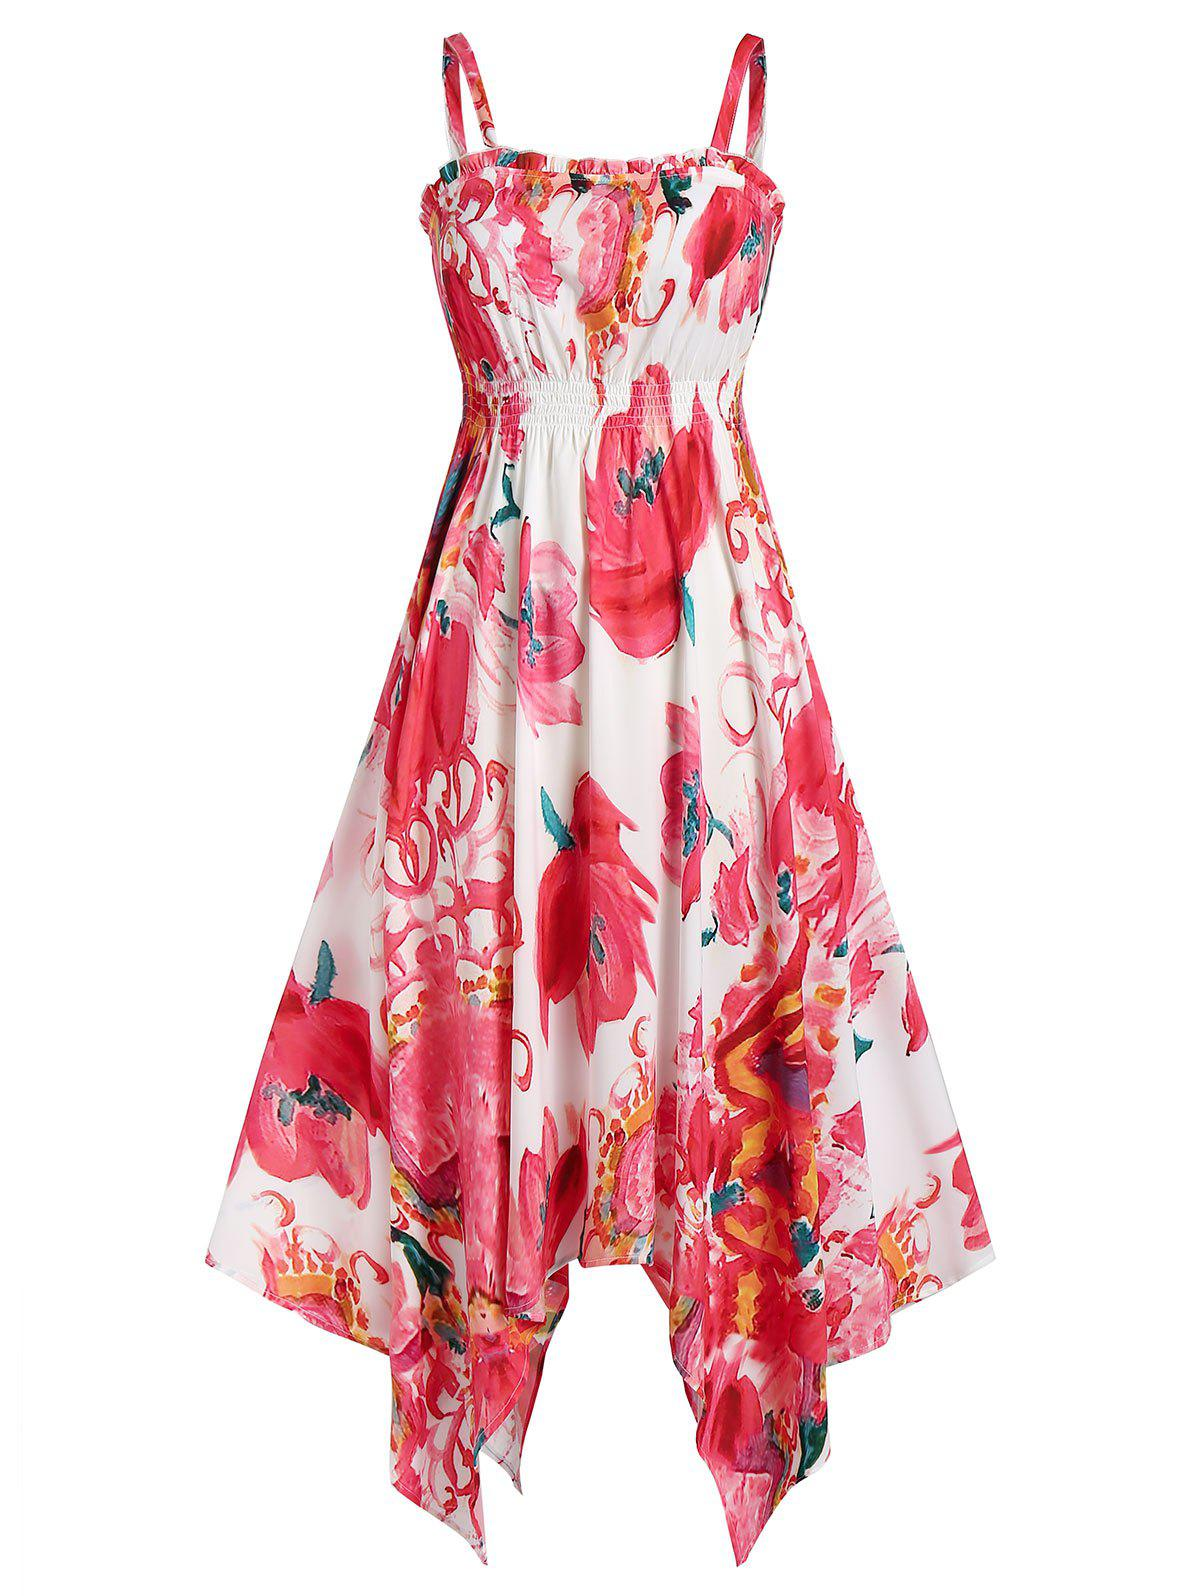 Online Flower Print Spaghetti Strap Midi Handkerchief Dress